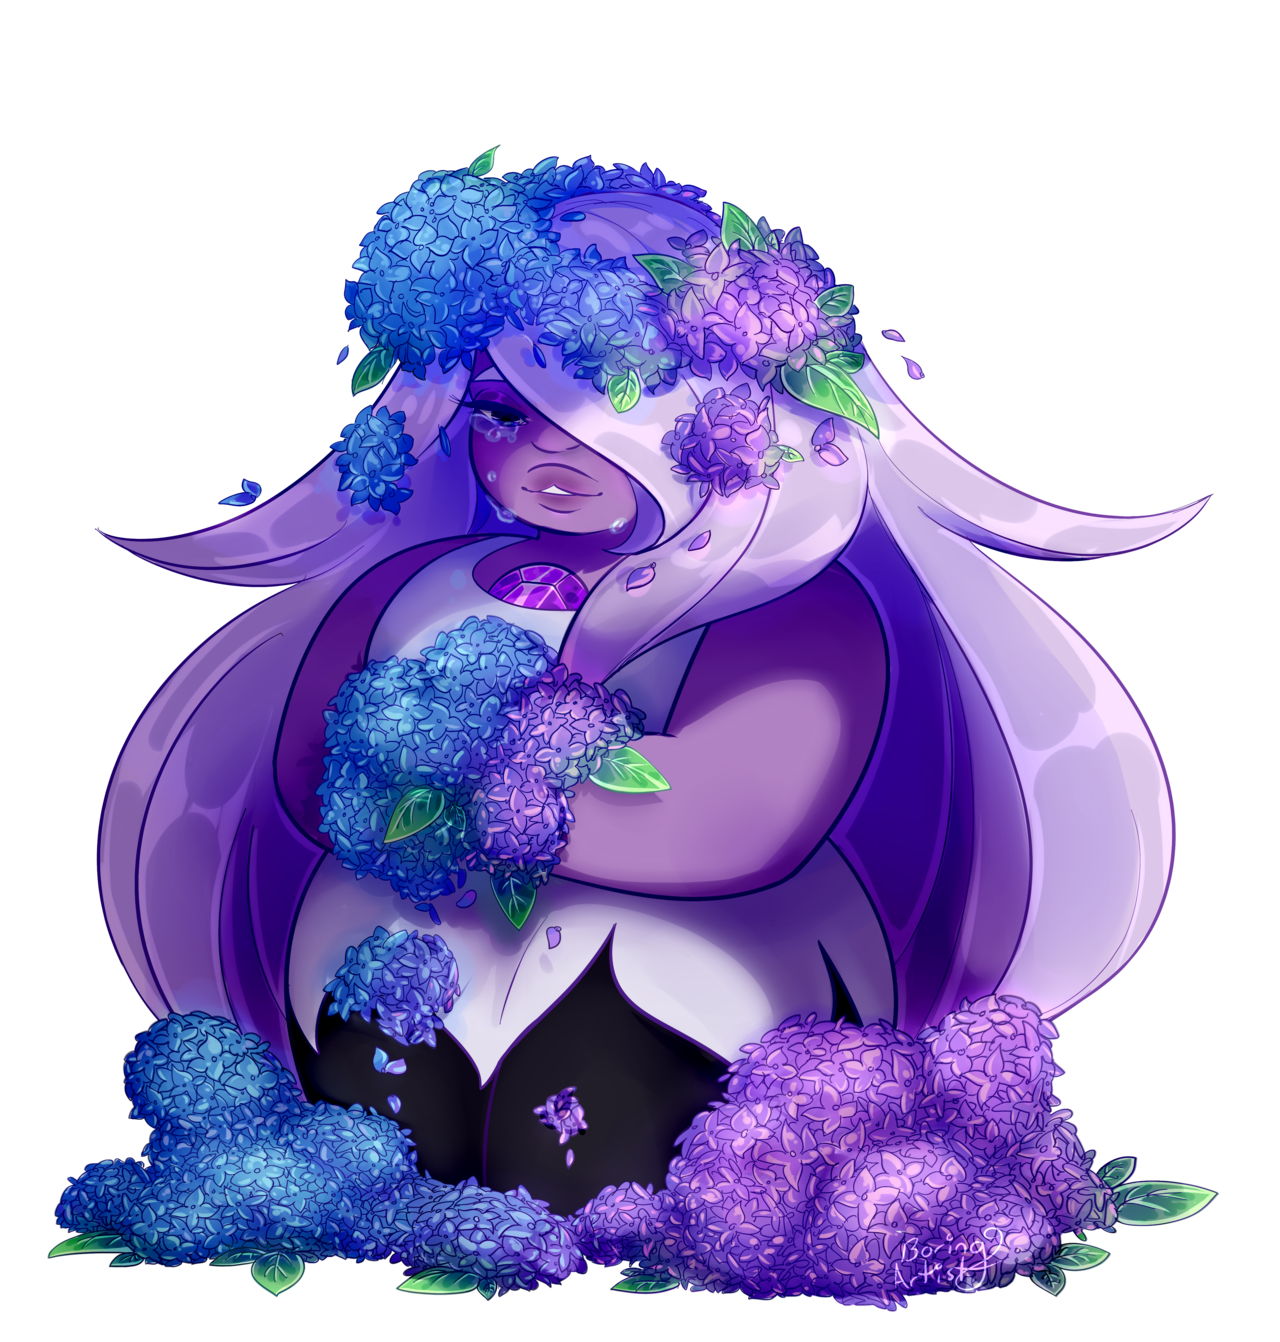 Amethyst and hydrangeas, sounds good right?